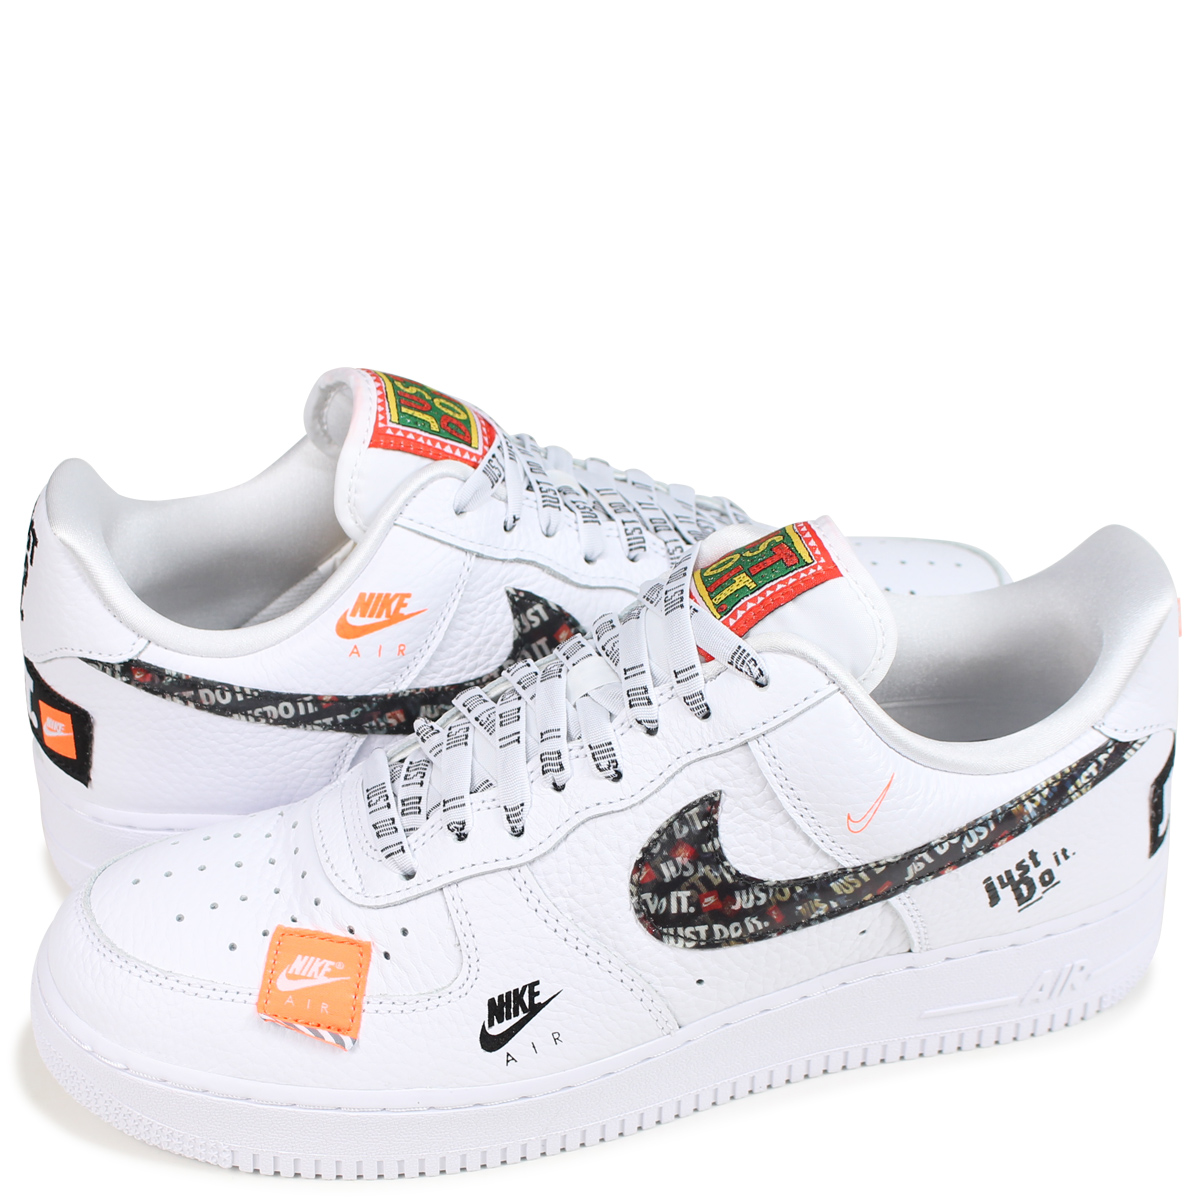 NIKE AIR FORCE 1 07 PREMIUM JUST DO IT Nike air force 1 sneakers men AR7719 100 white [189]